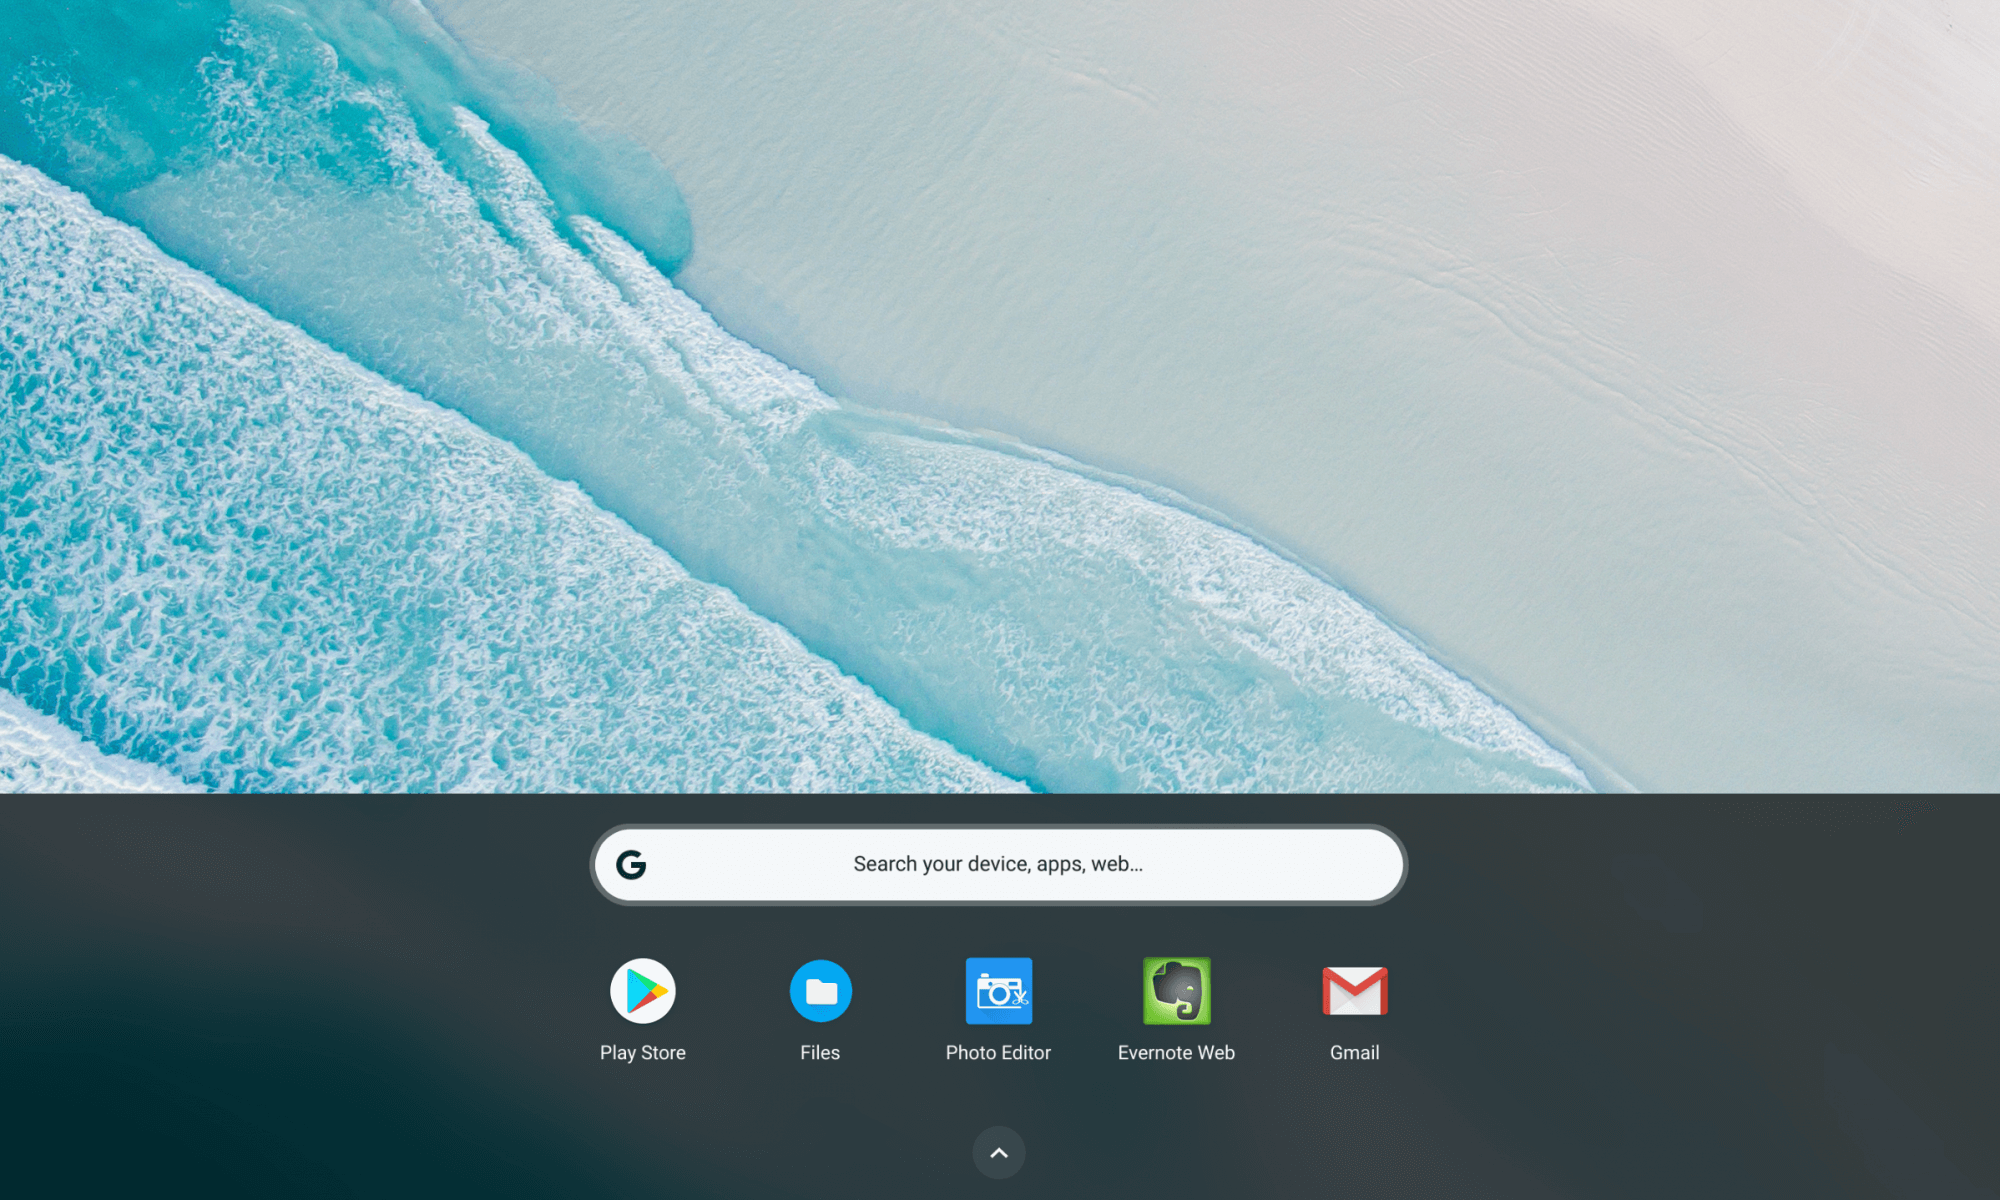 Google Pixelbook Chrome OS Interface